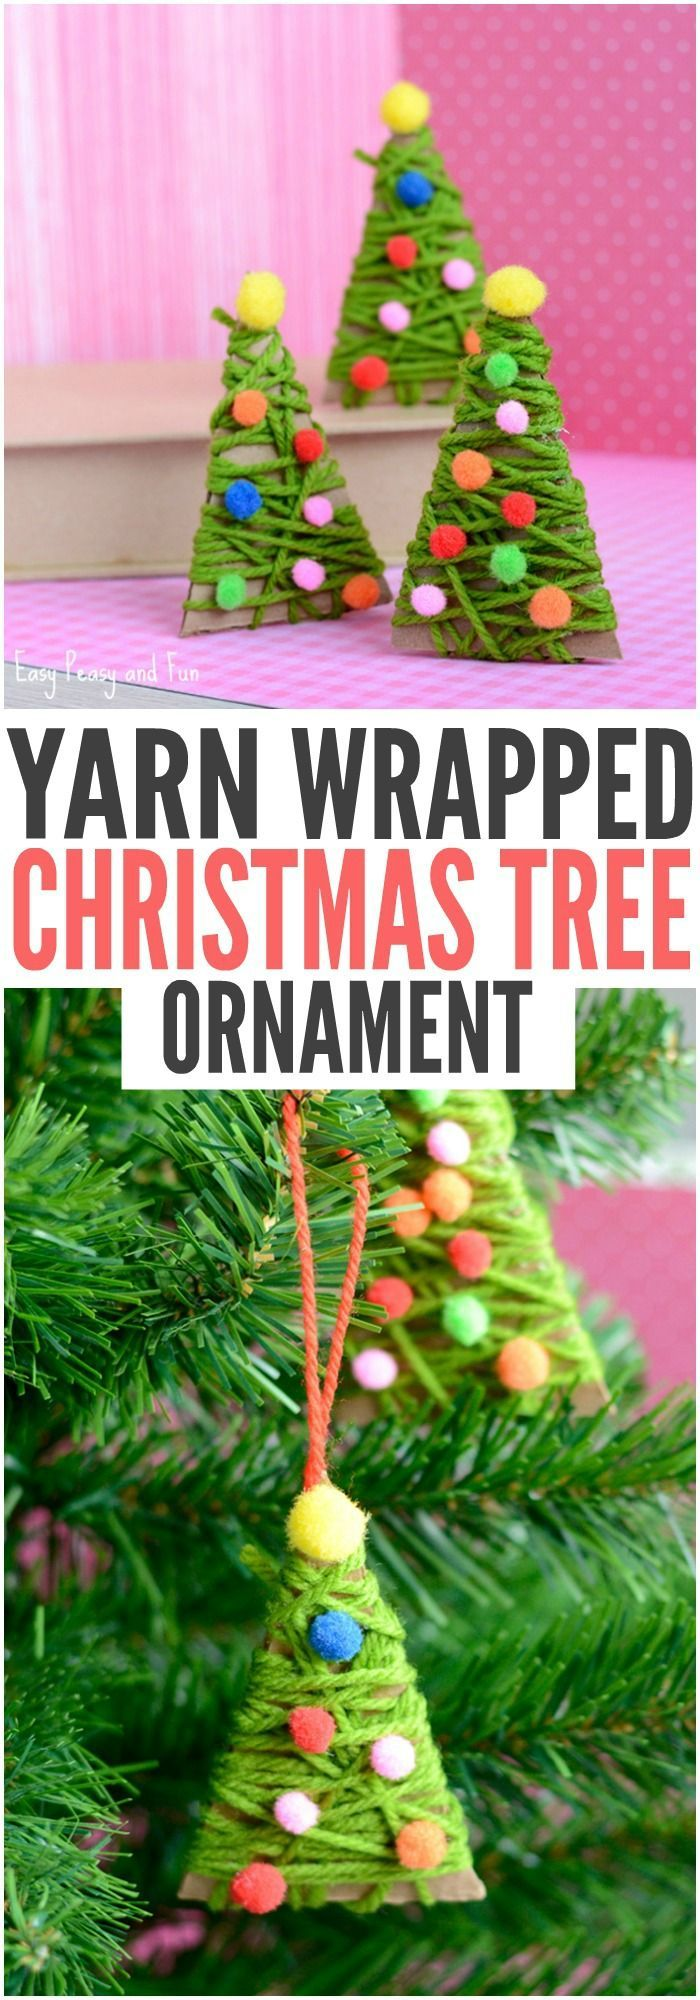 DIY Yarn Wrapped Christmas Tree Ornament - Christmas Ornaments for Kids to Make